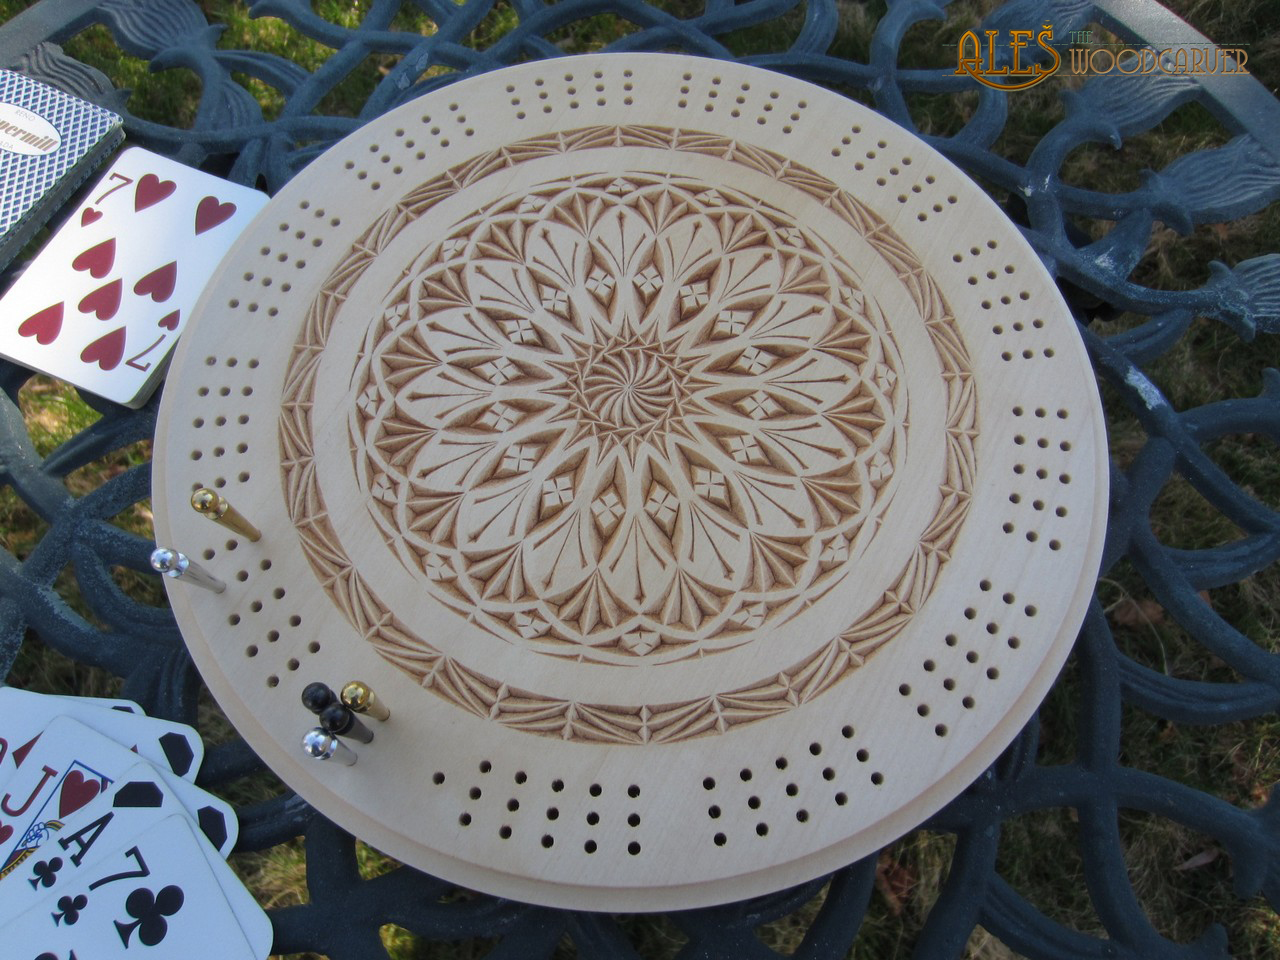 Ales the woodcarver cribbage game anybody